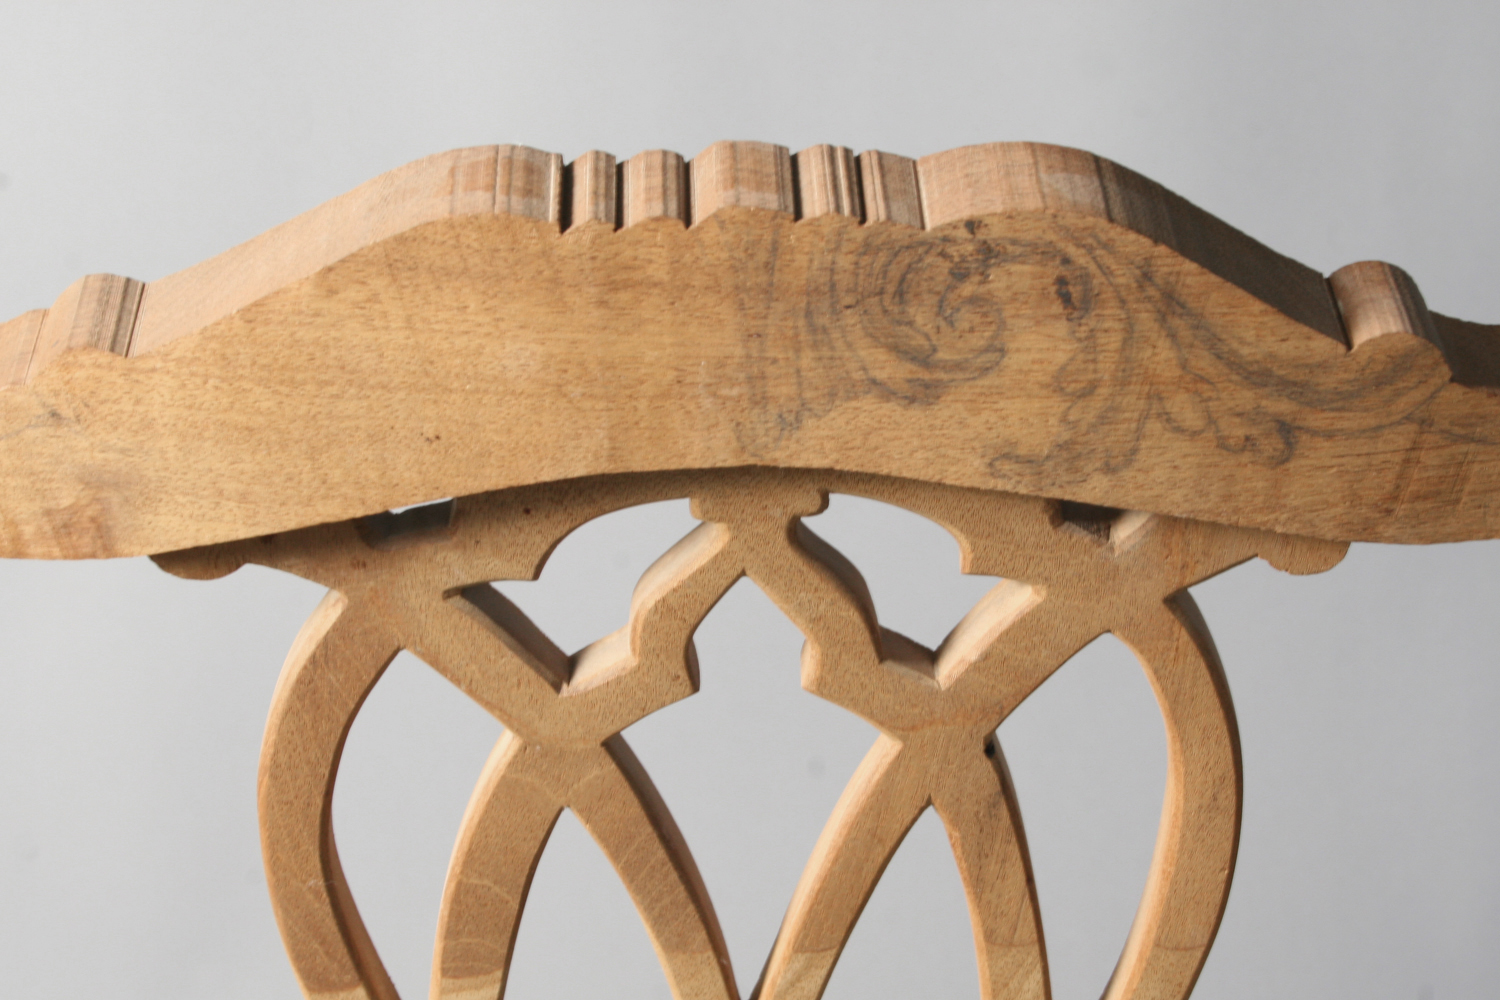 Chippendale chair during fabrication (detail)